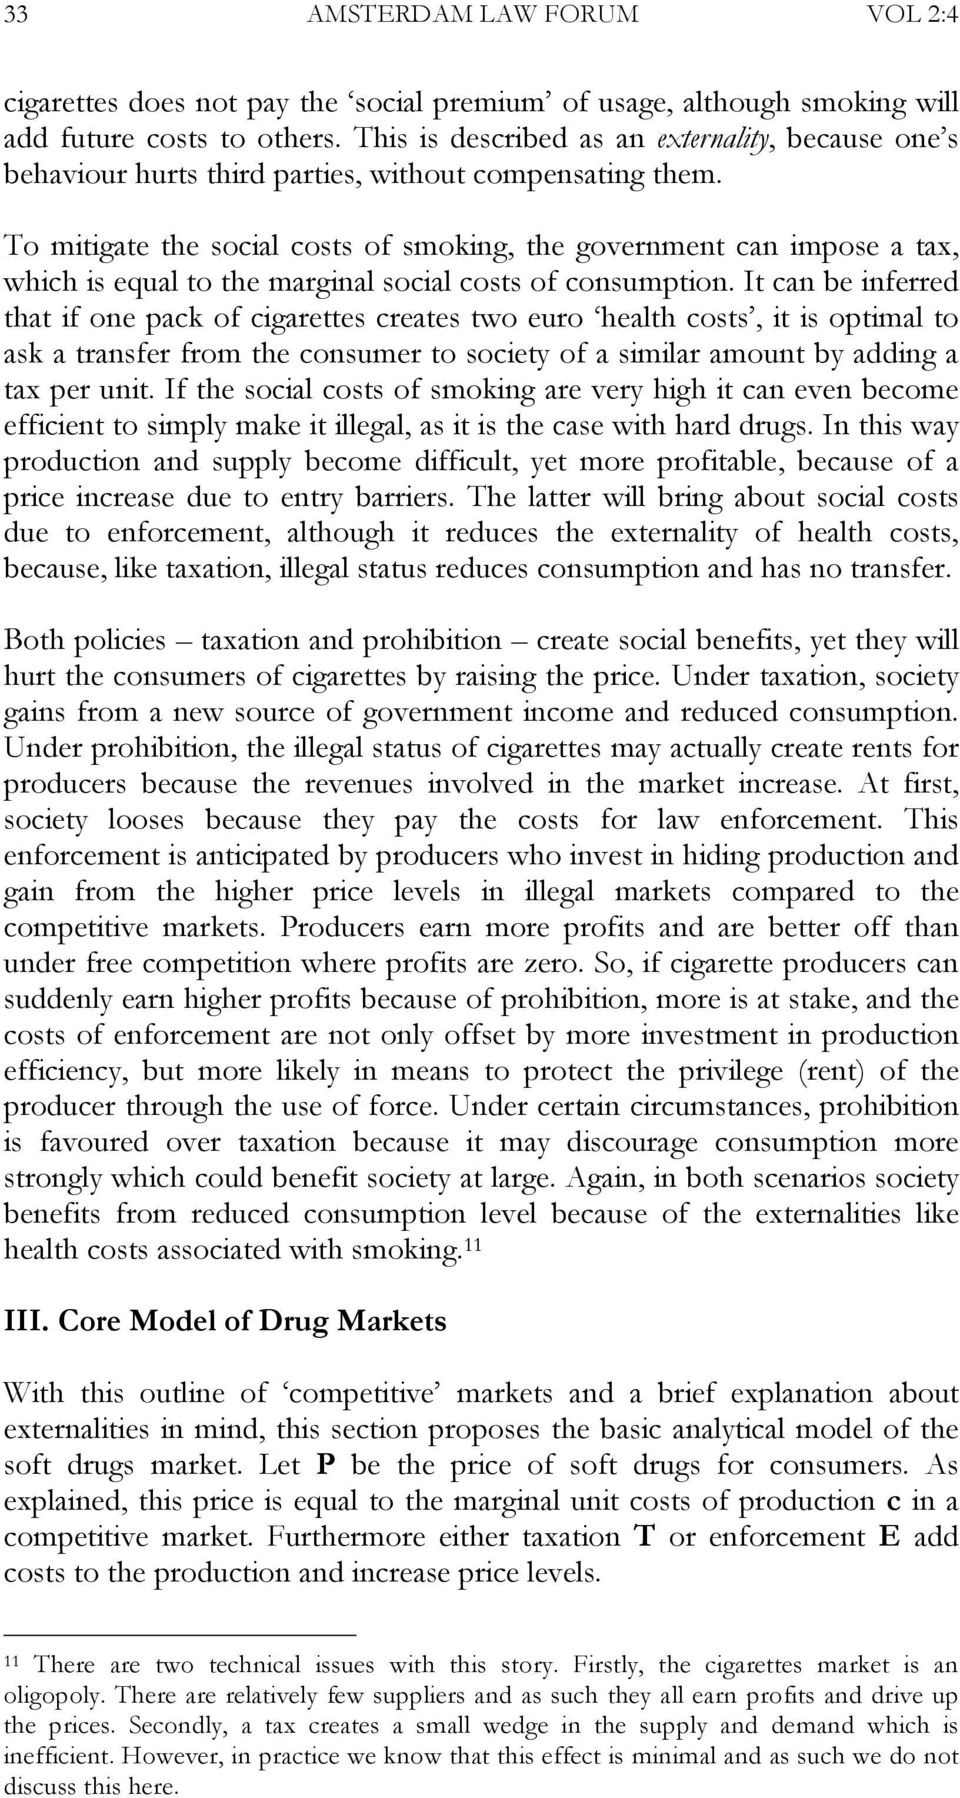 To mitigate the social costs of smoking, the government can impose a tax, which is equal to the marginal social costs of consumption.